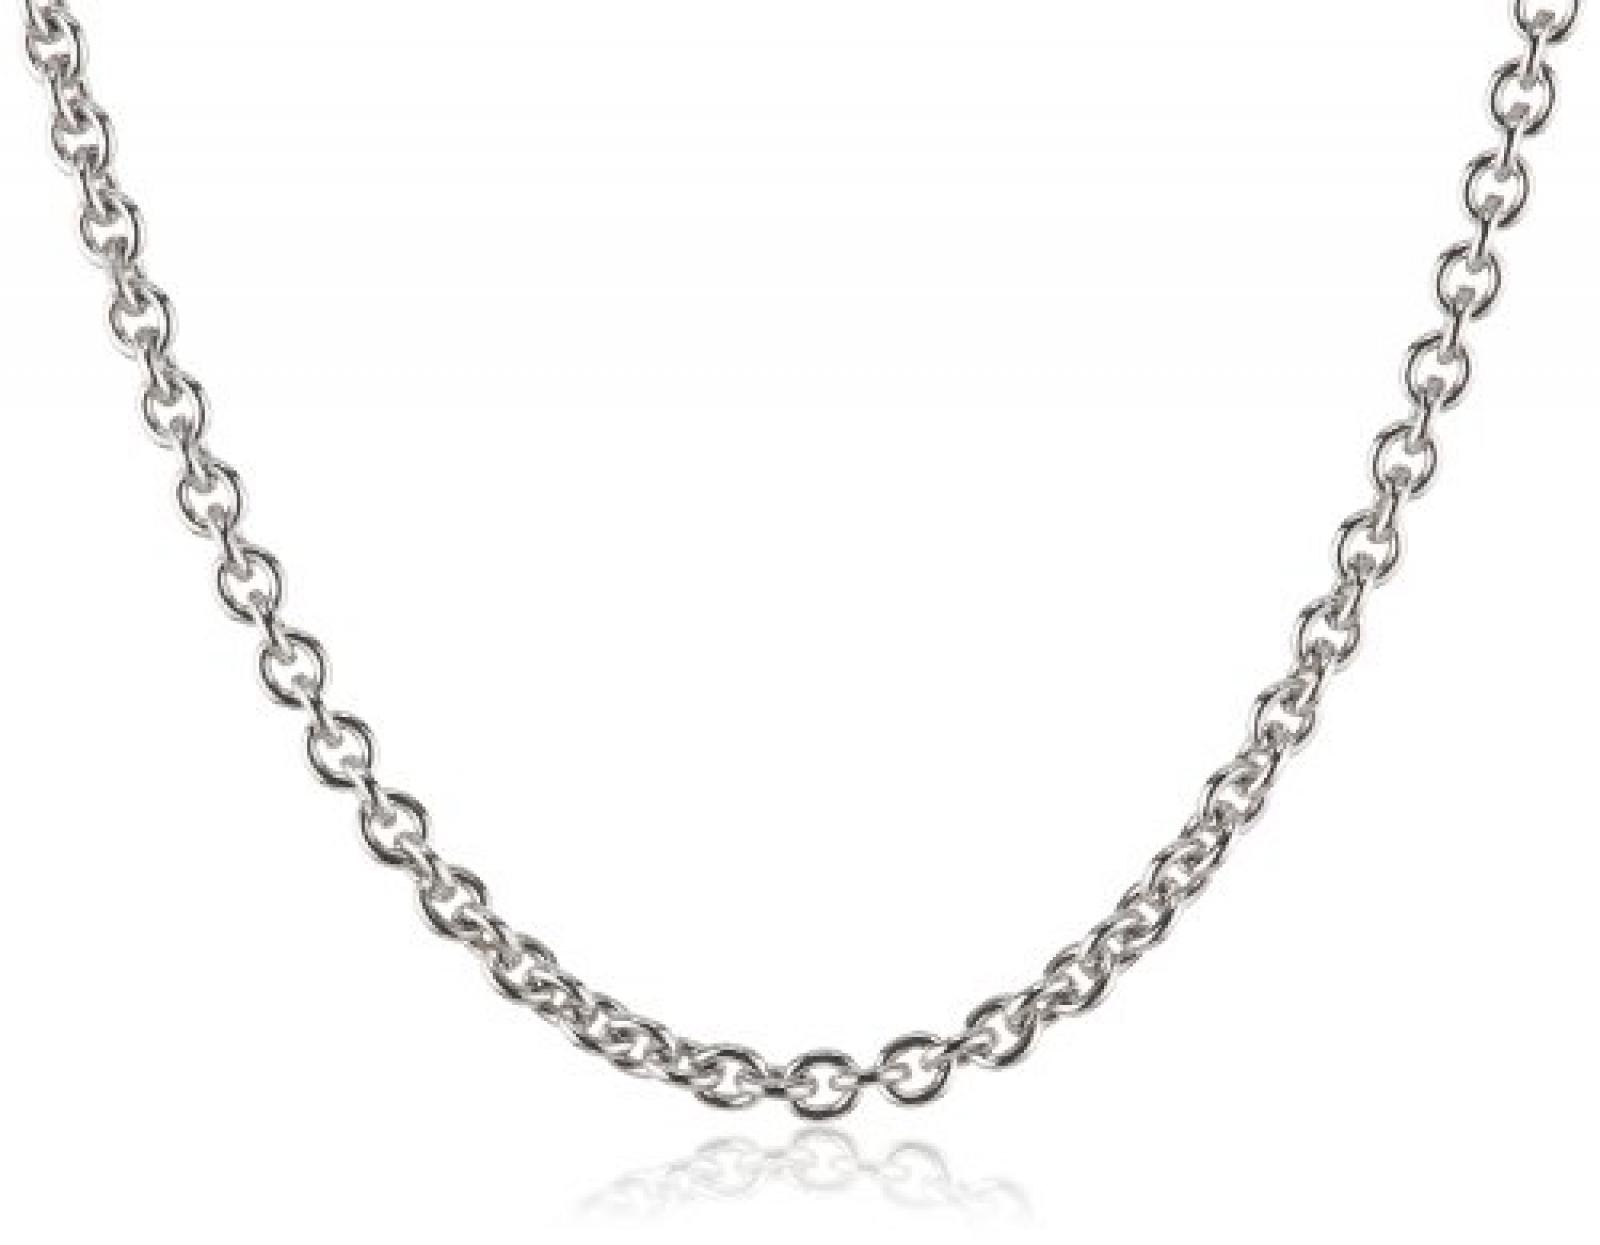 Amor Jewelry Unisex-Halskette 925 Sterling Silber 90186